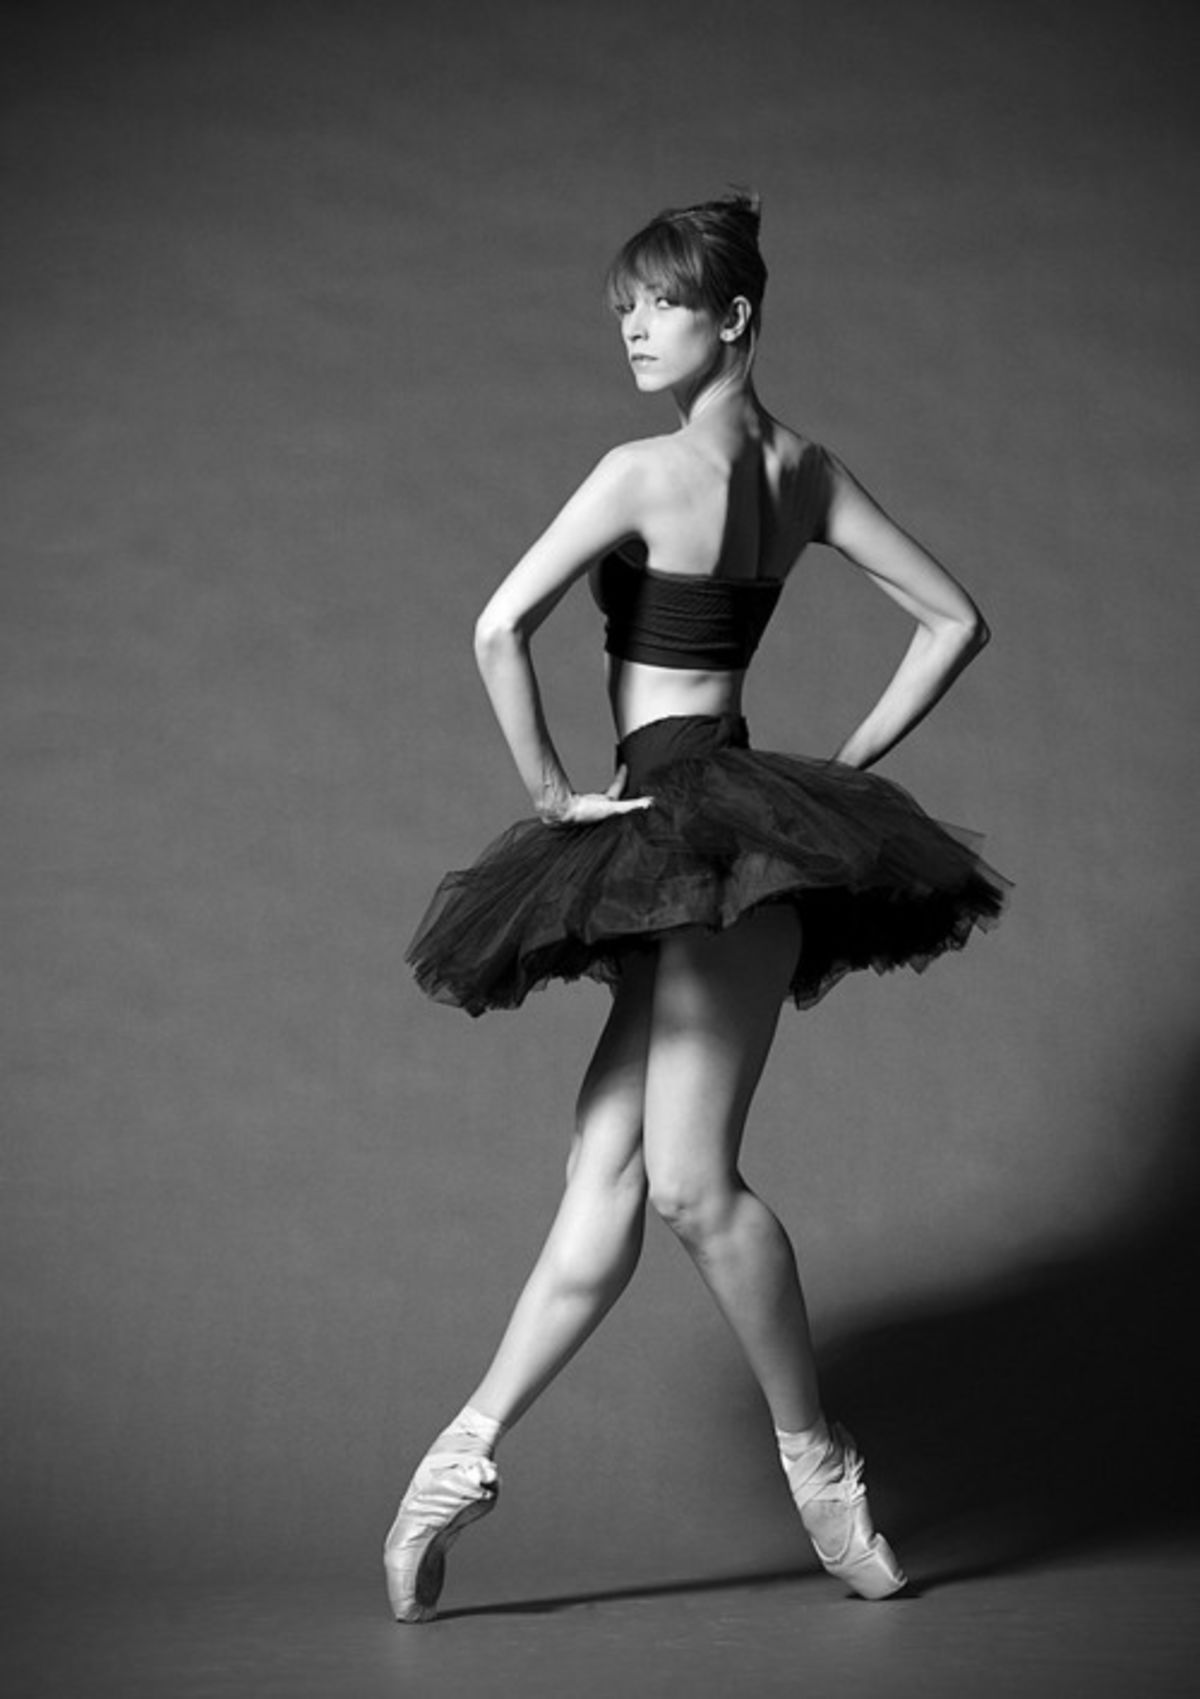 Lean, Long Muscles at the Barre | Psychology Today